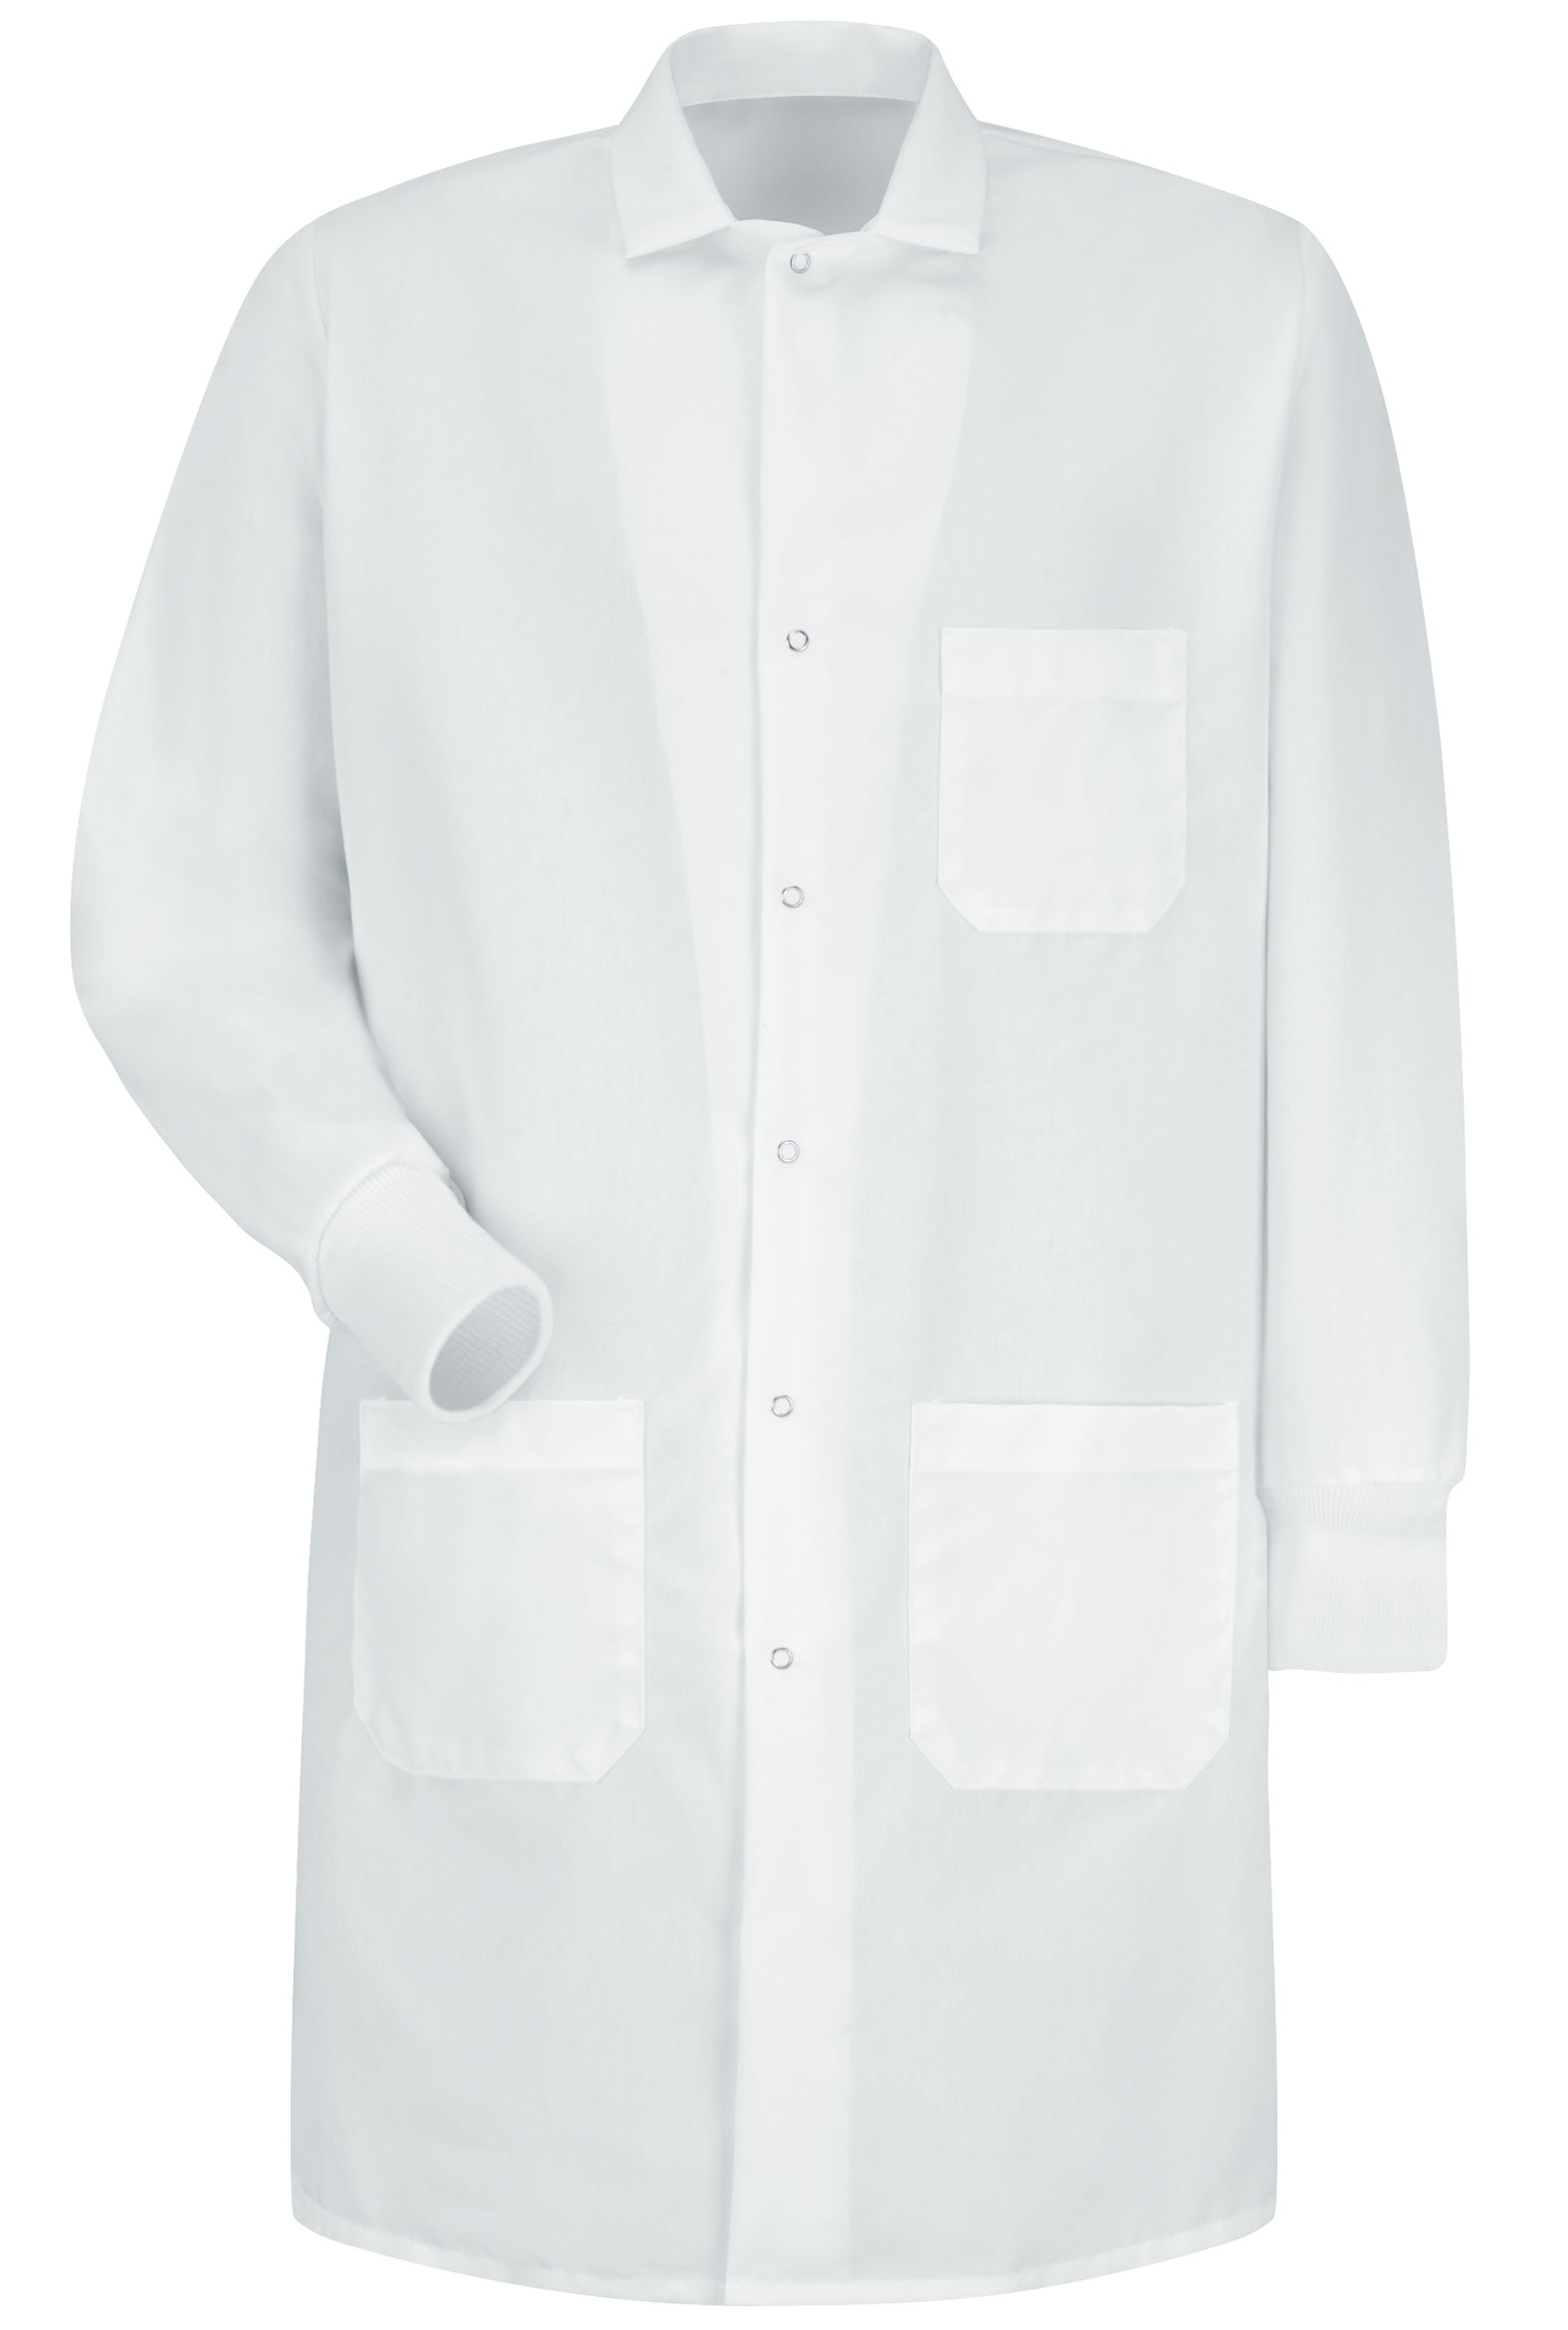 Unisex Specialized Cuffed Lab Coat by Red Kap